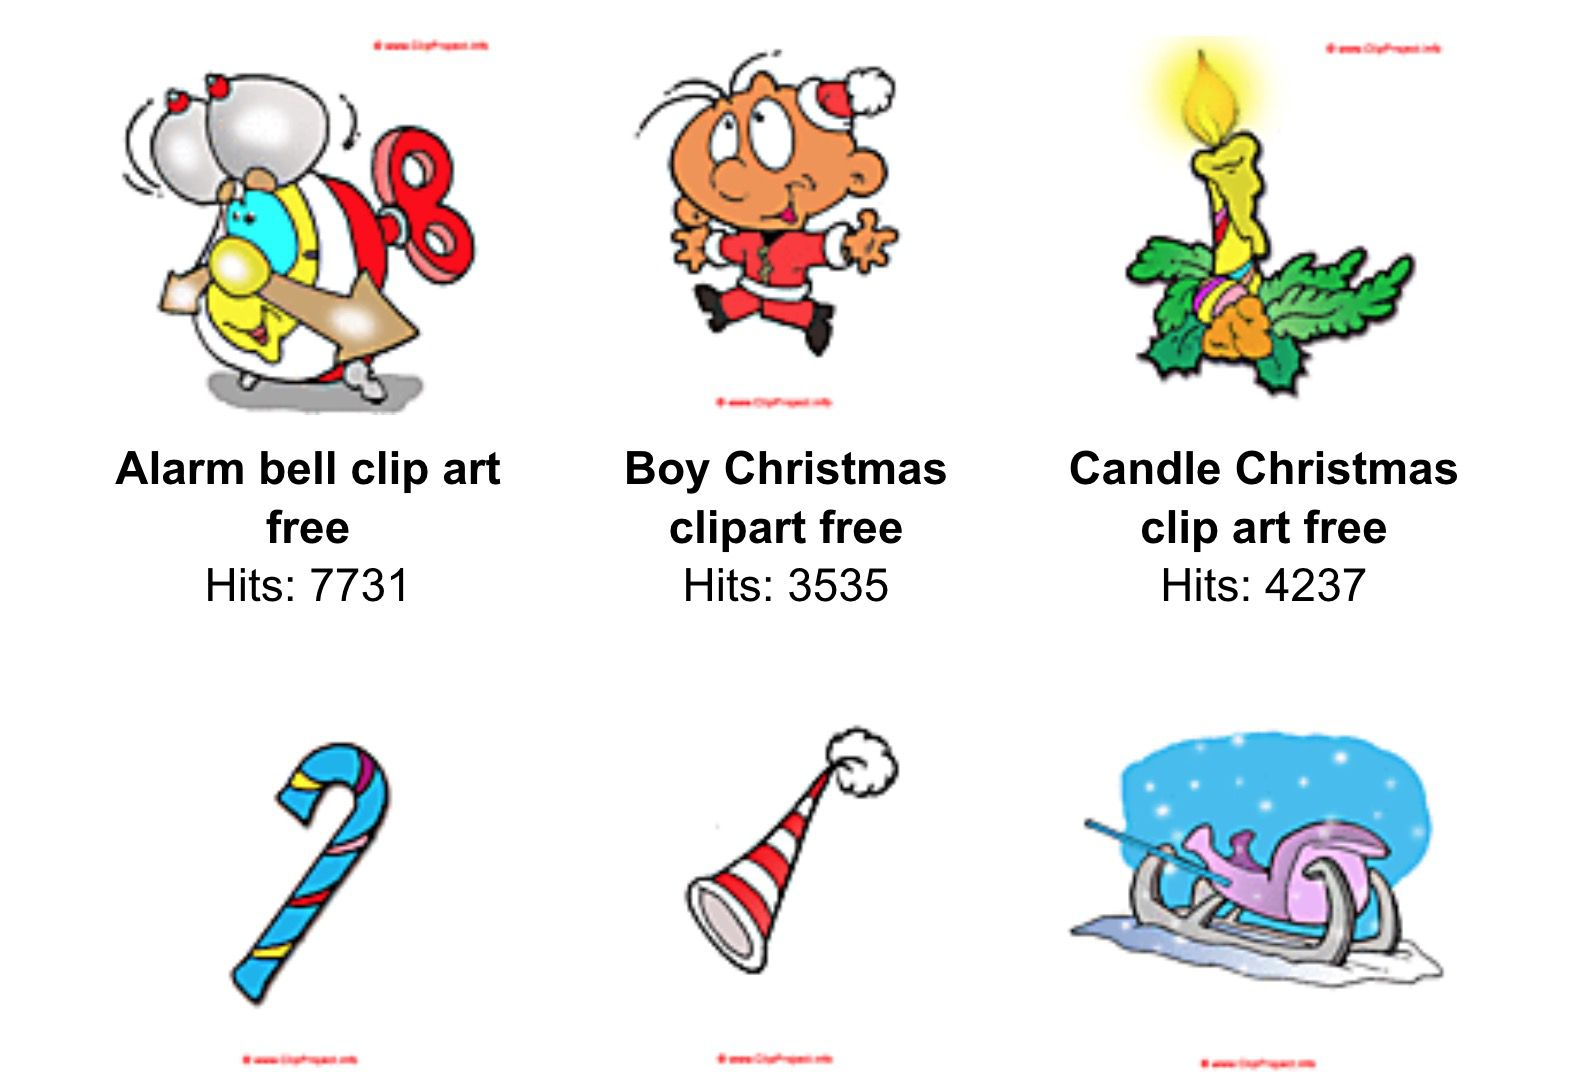 Christmas Images Clip Art Free.Favorite Sites For Christmas Clip Art